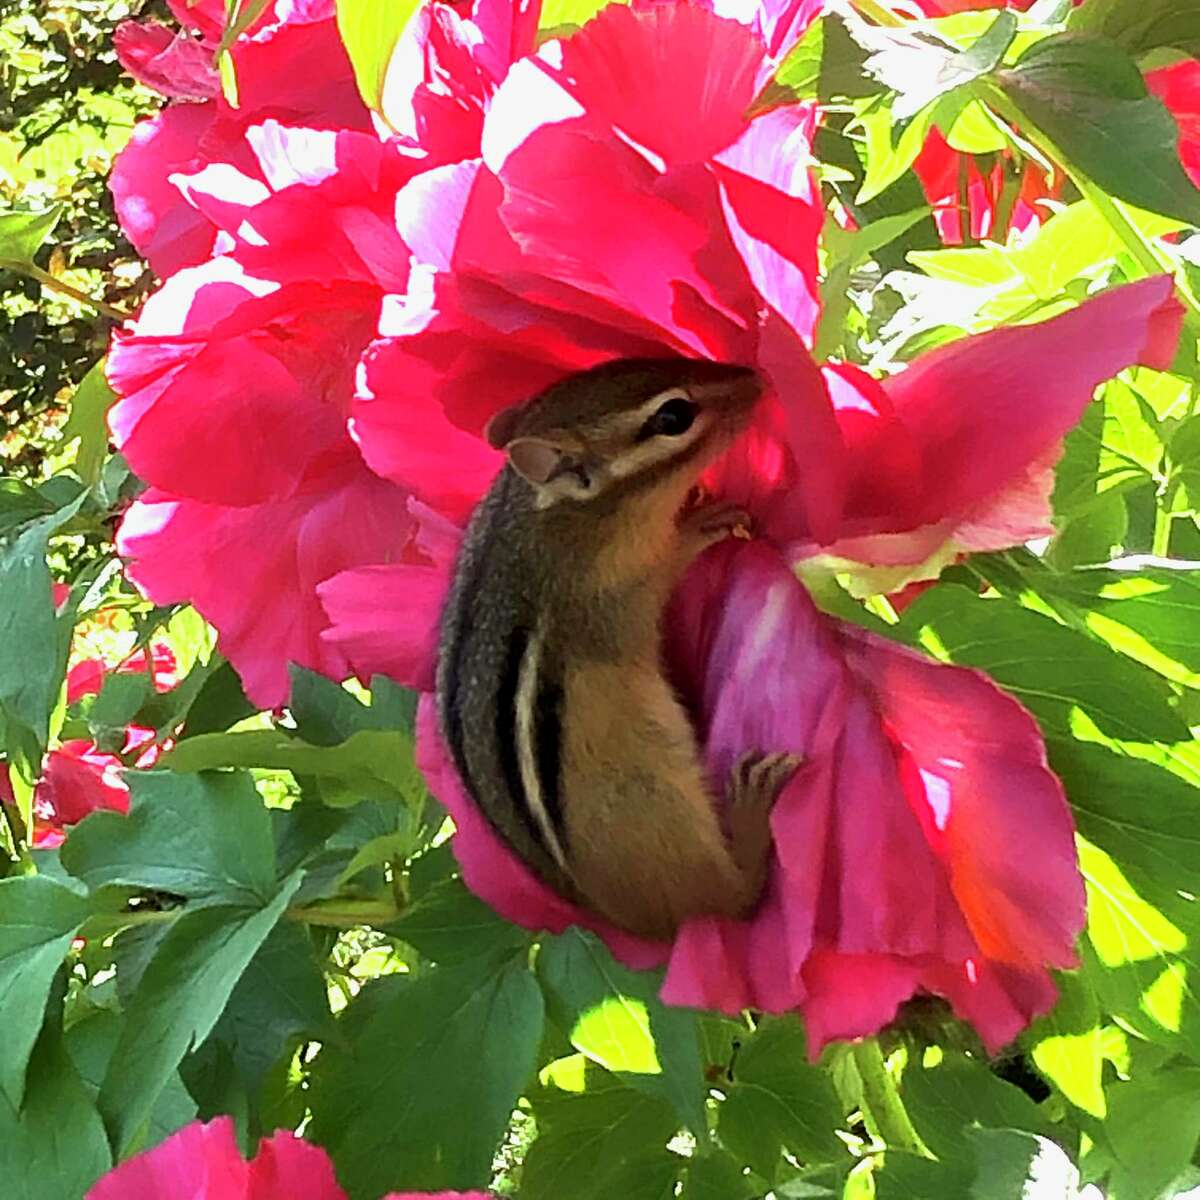 This chipmunk jumped up on my tree peony blossom to hide from a visiting cat that was about to pounce on it. We managed to distract the cat and preserve the chipmunk, but what genius that little creature showed in find such a place to hide. (Judith Fetterley of Glenmont)